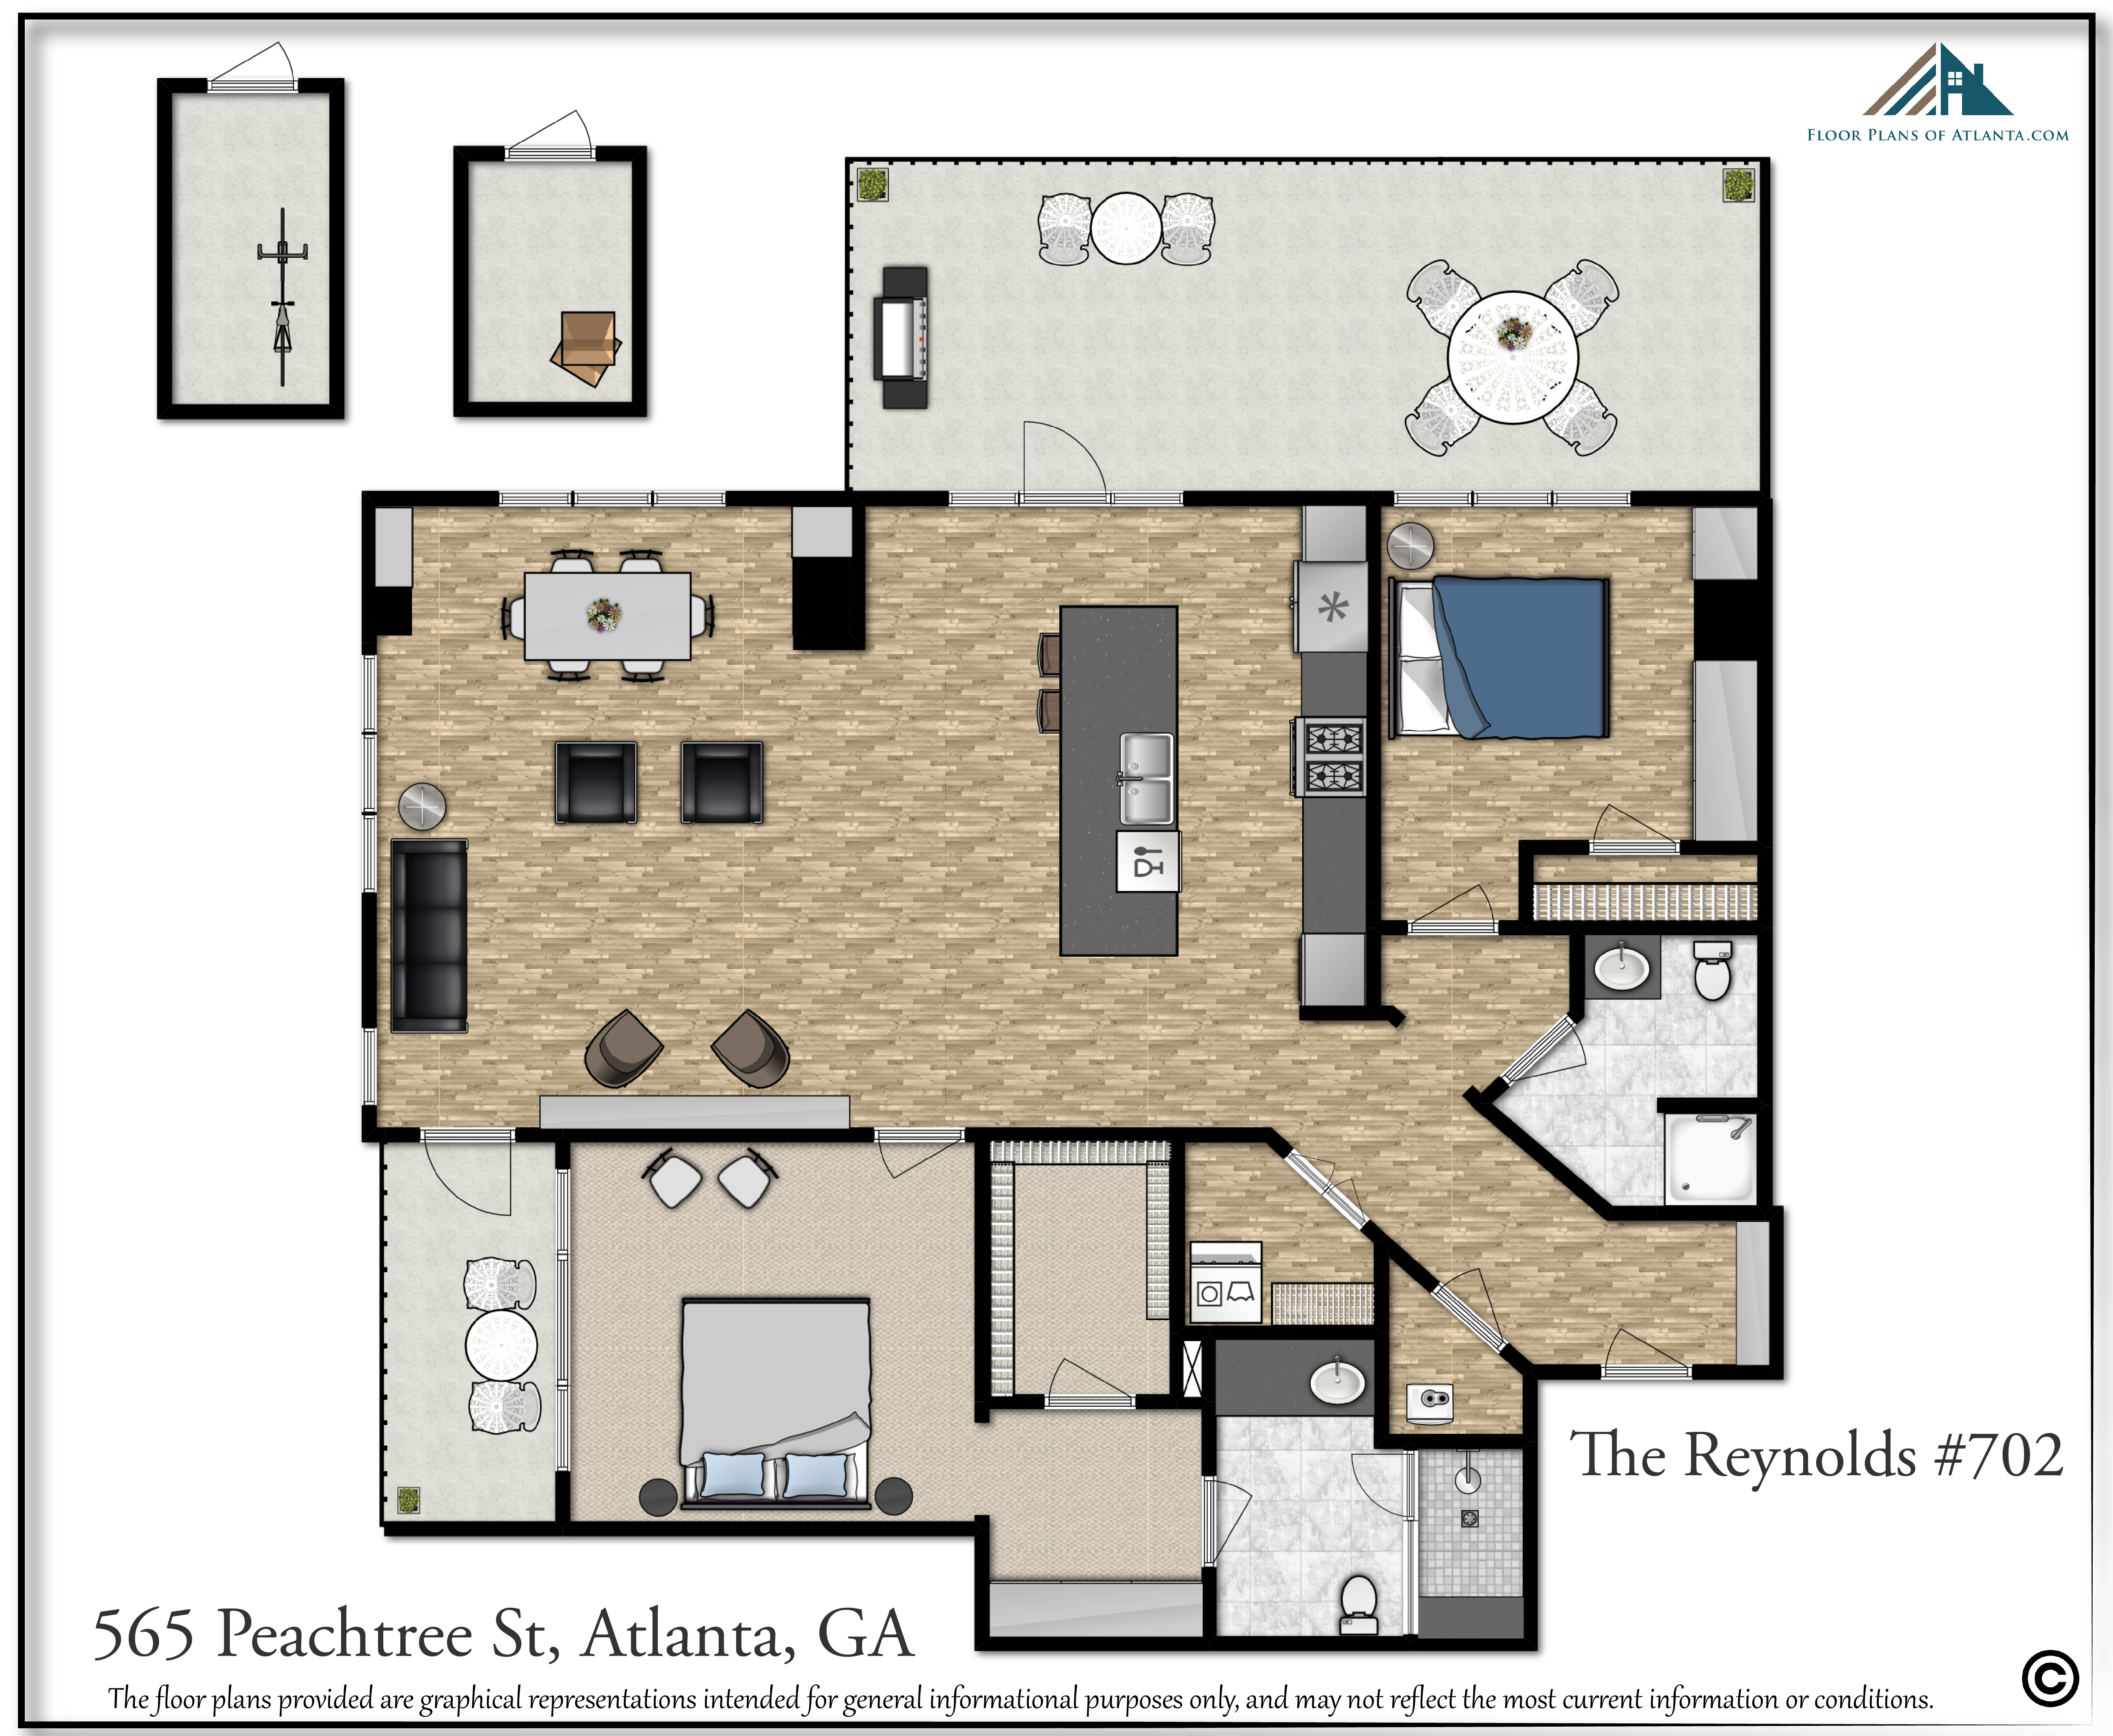 20. Layout with exterior space and extra storage